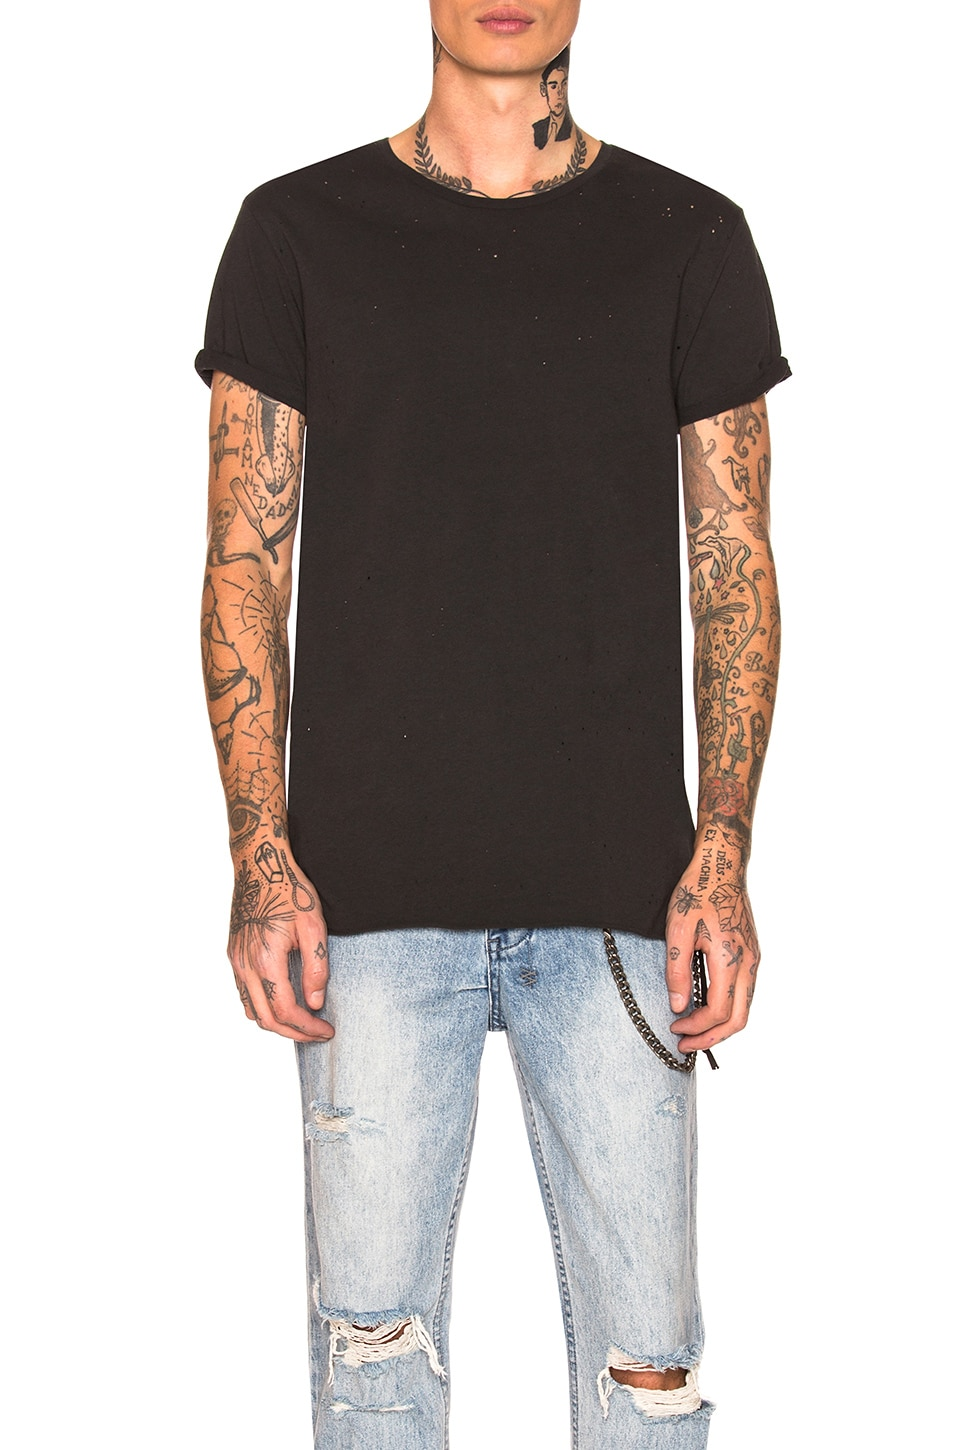 Ksubi Kodeine Black to Black Tee in Black